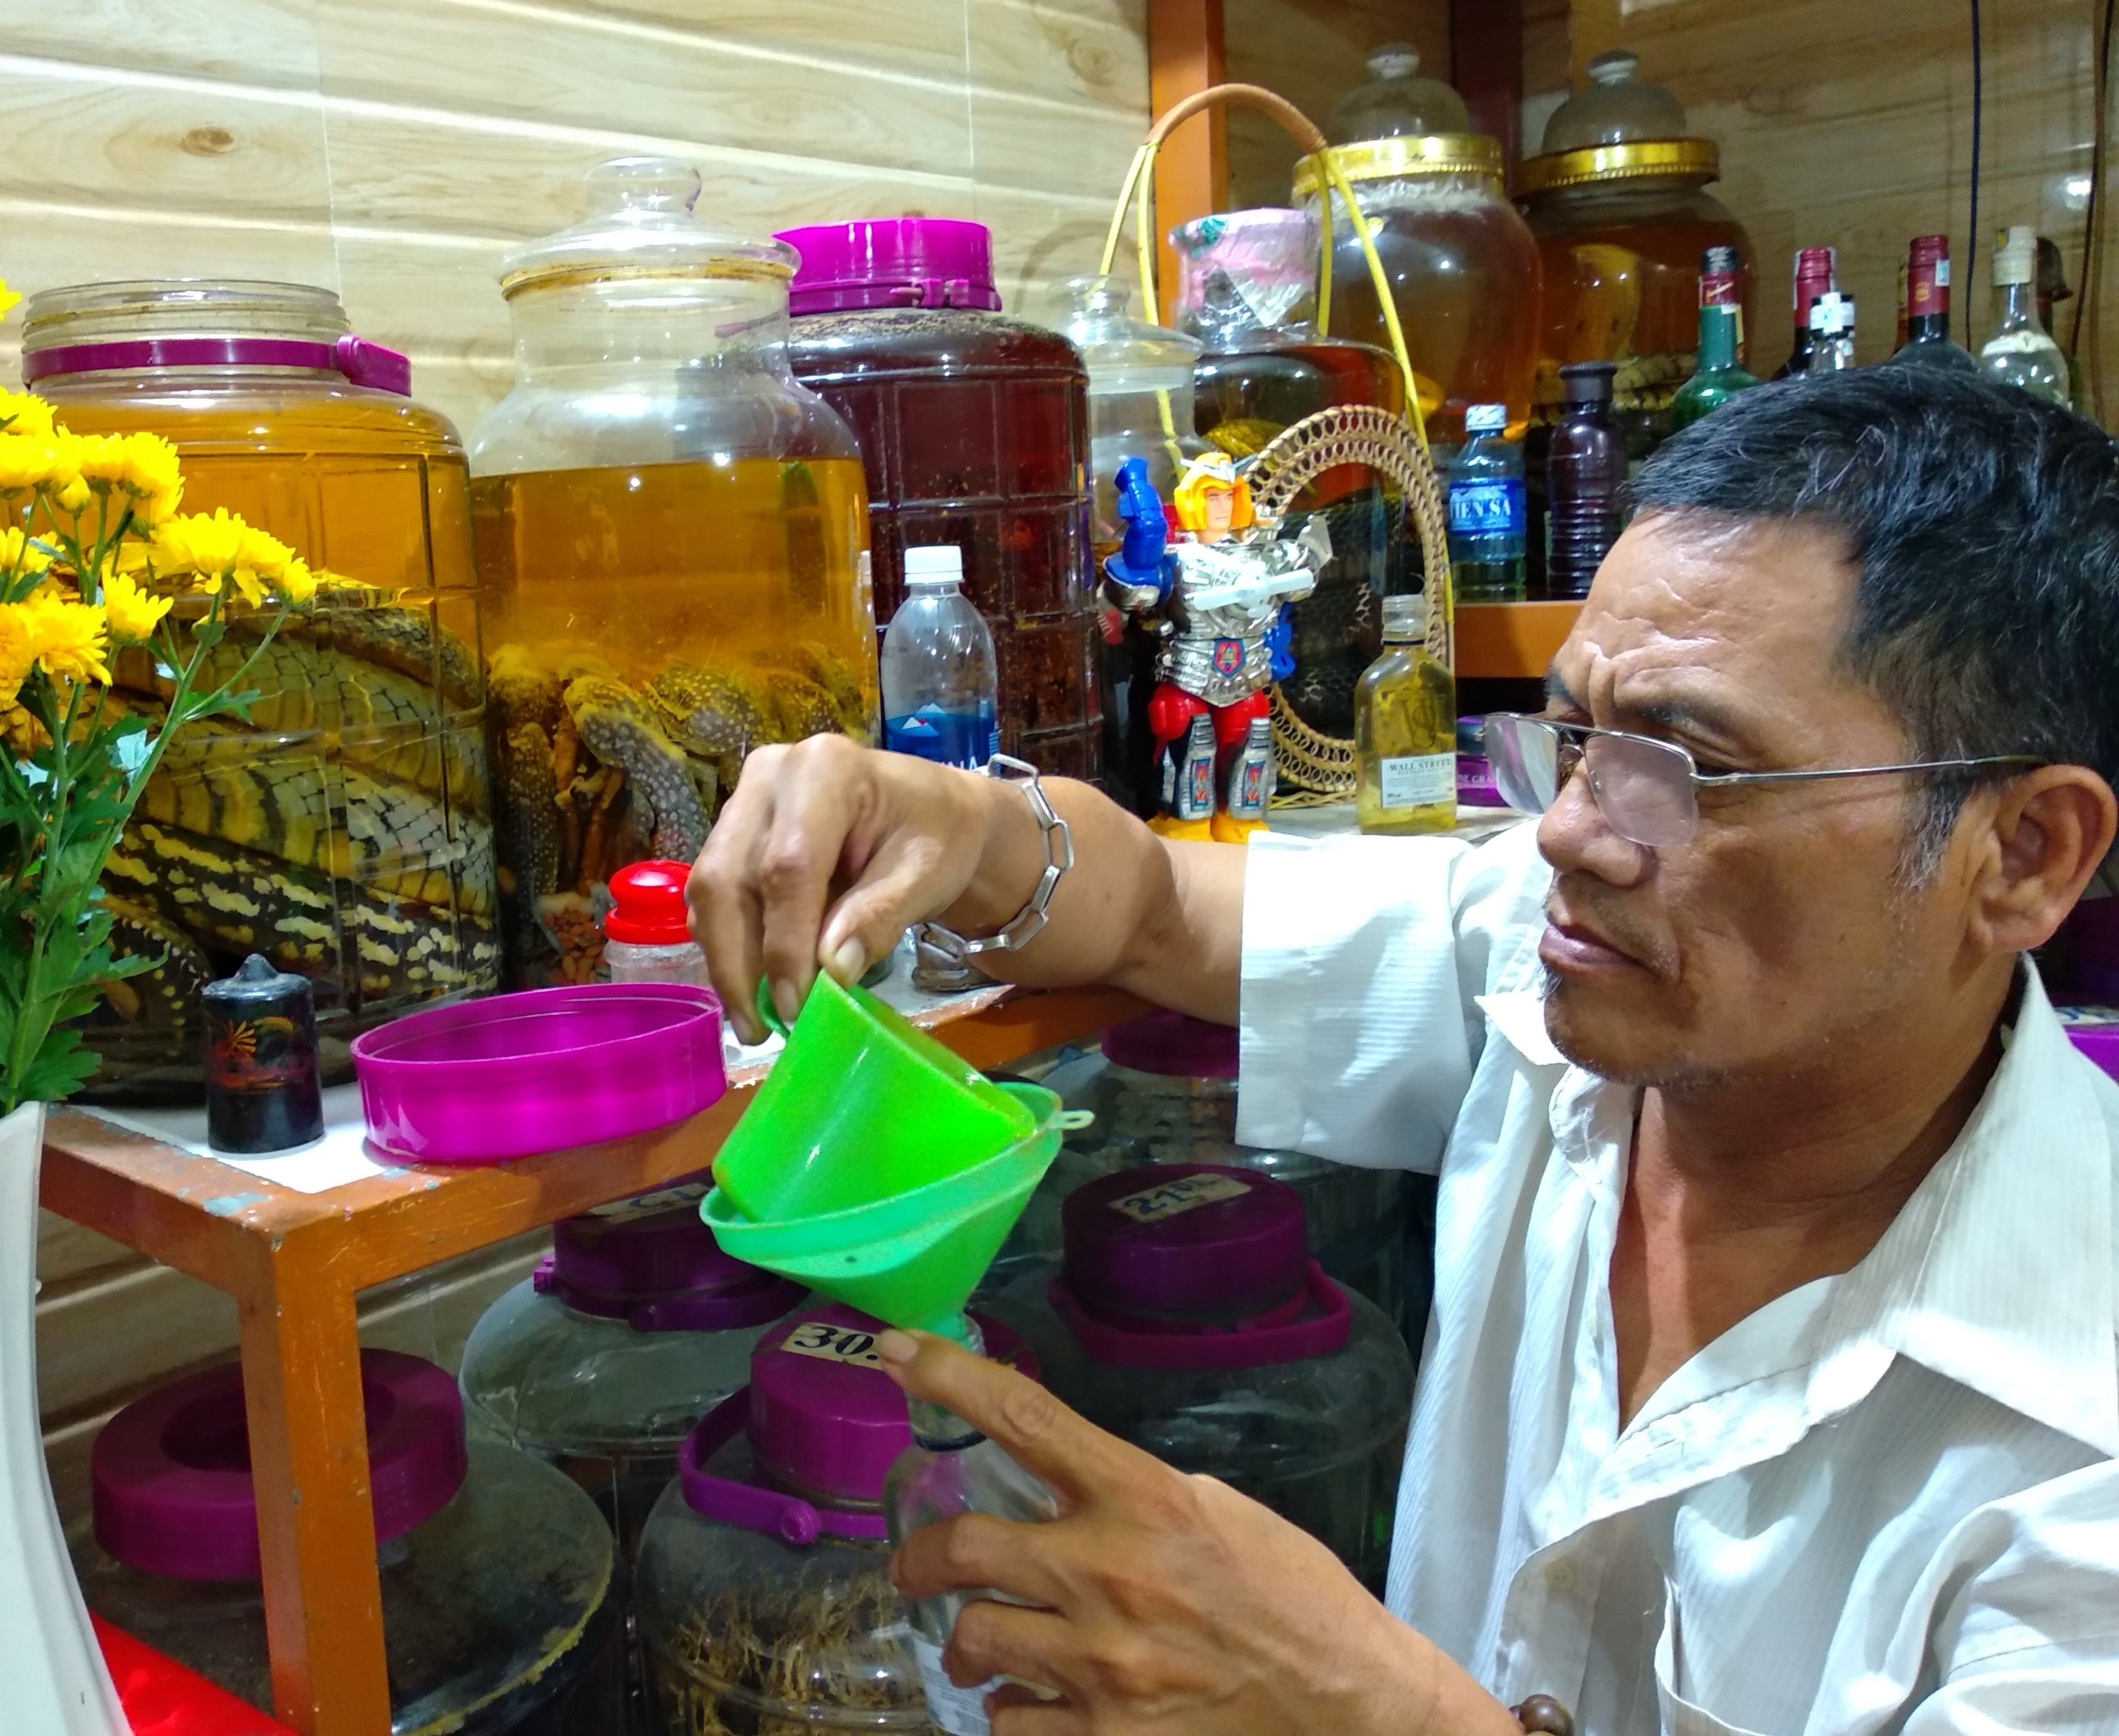 da nang food tour, liquid immersion